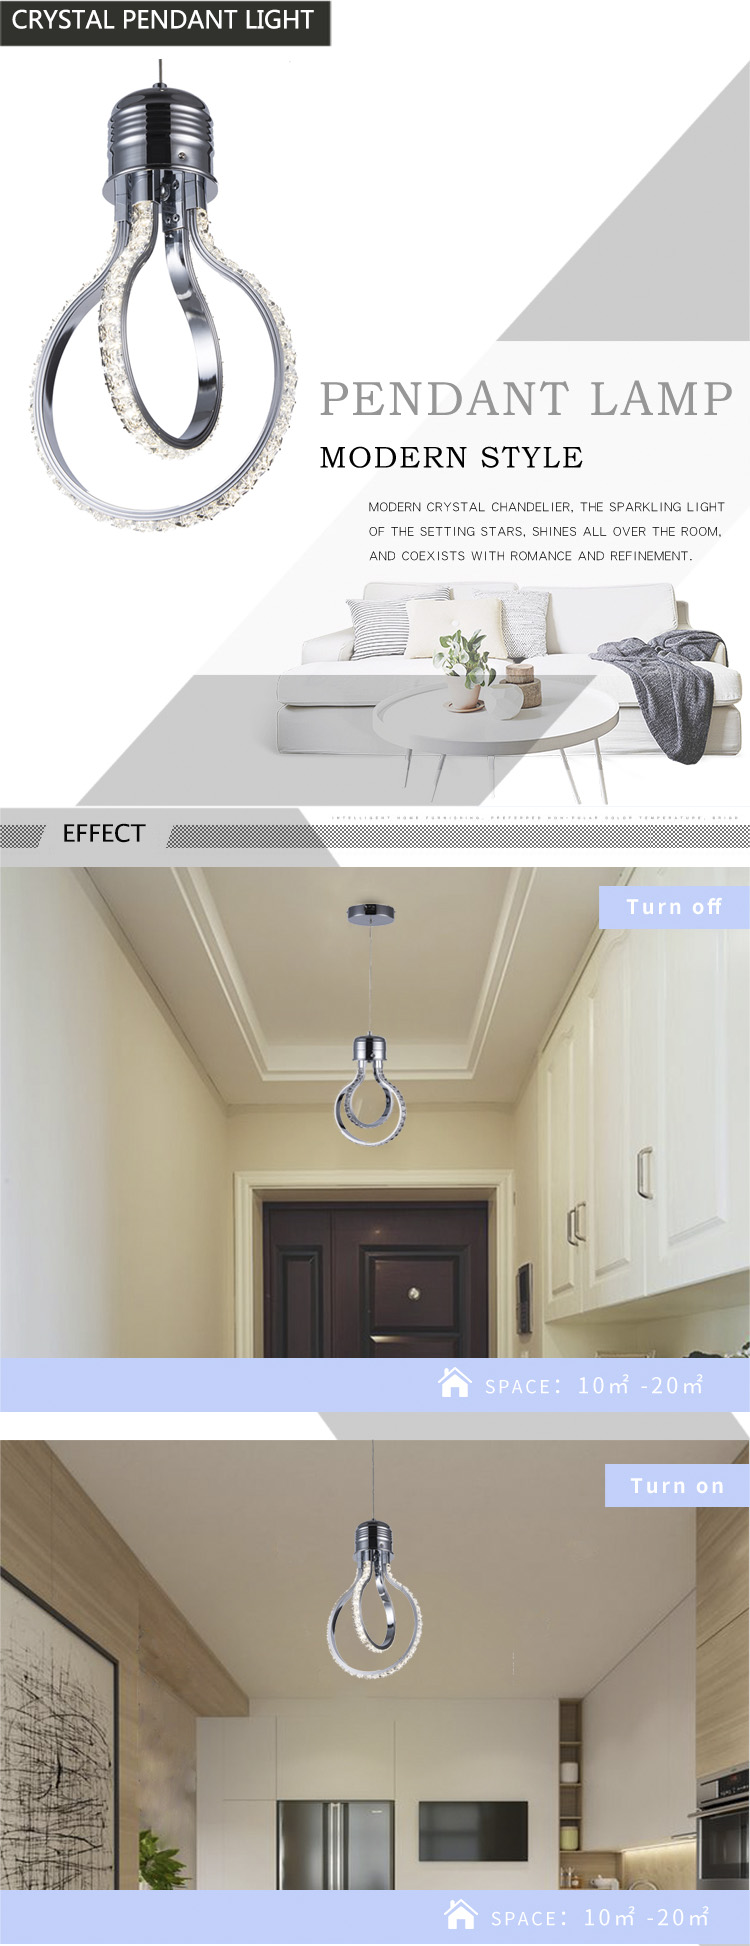 Eclairage Plafond Salon Led Lustre En Cristal Plafond Salon Suspension Lampe Chambre Luminaires Escalier Lumière Nouveauté éclairage Loft Suspendu Lumières